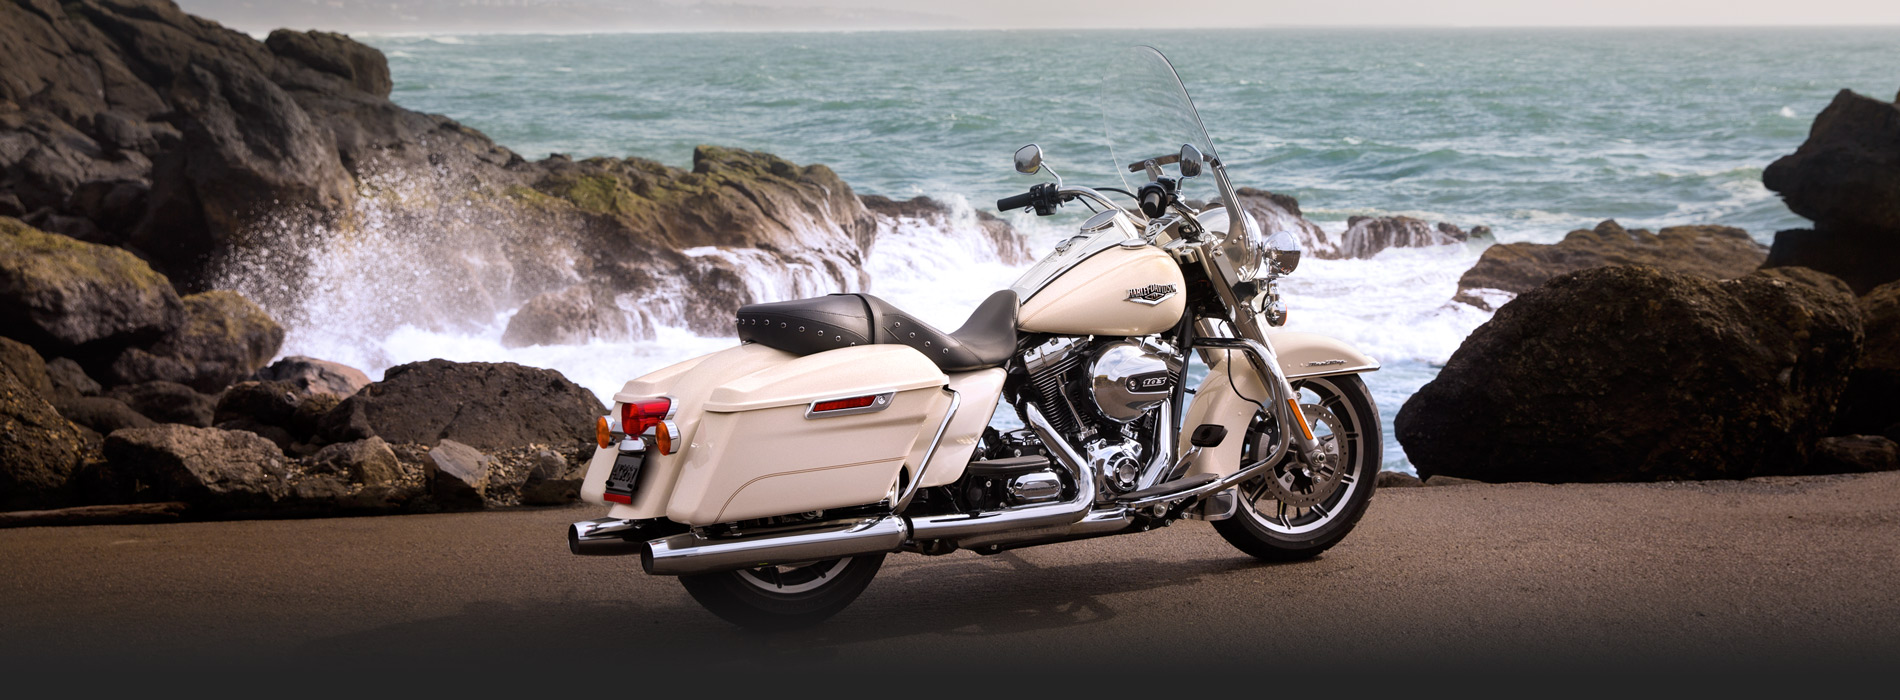 Harley-Davidson Road King Fire - Rescue 2014 #4